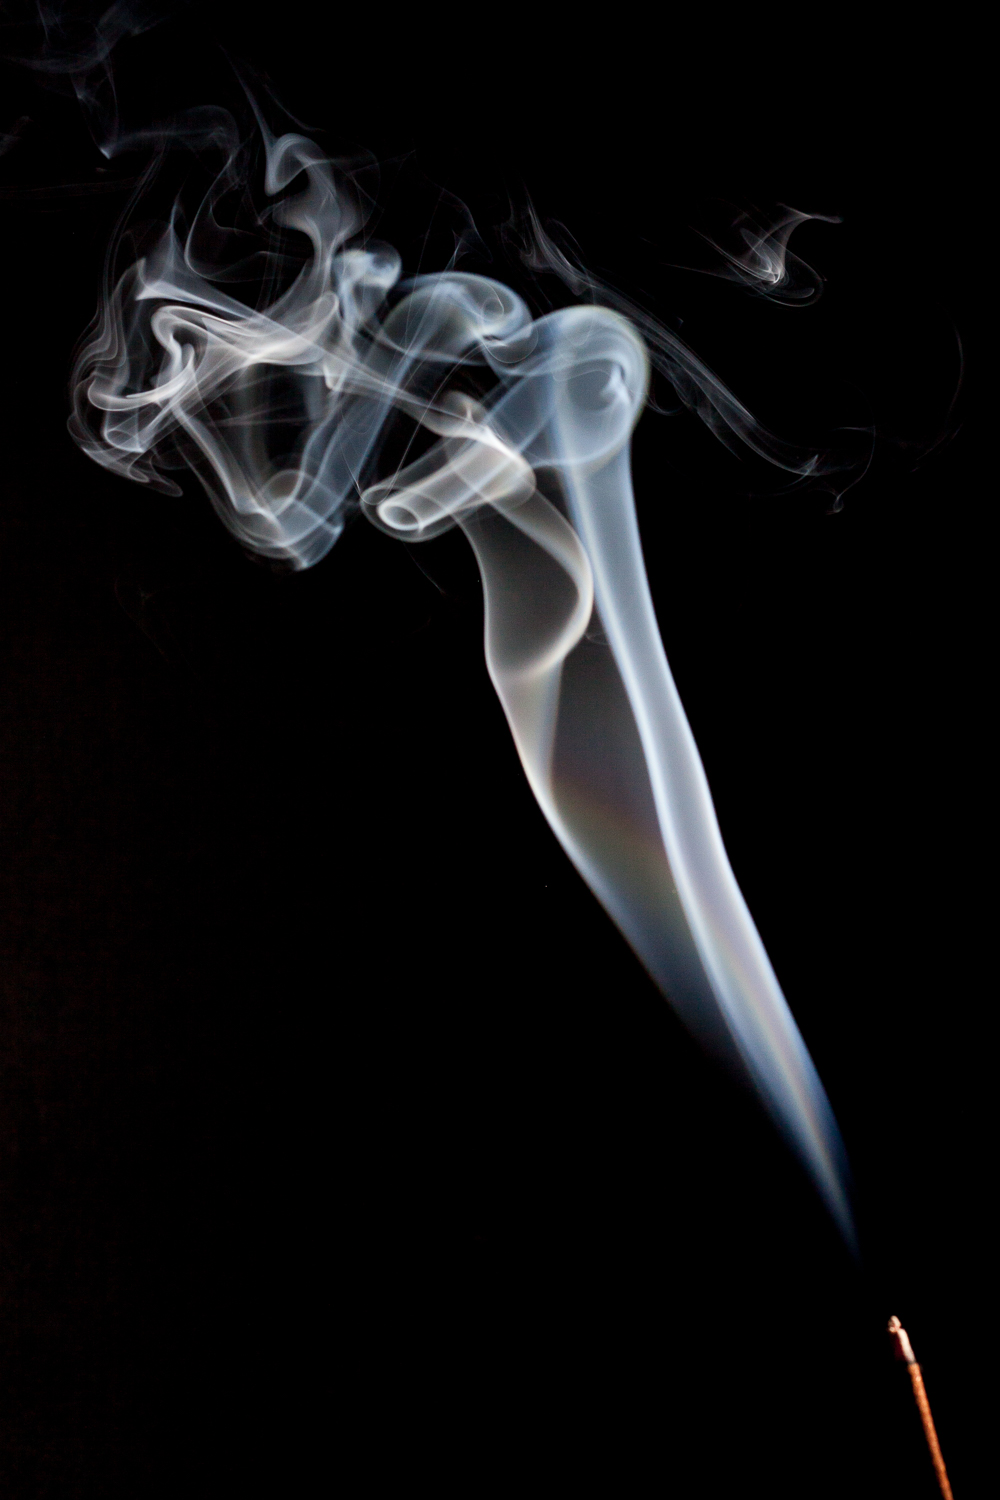 Abstract Smoke Photography - The Seahorse